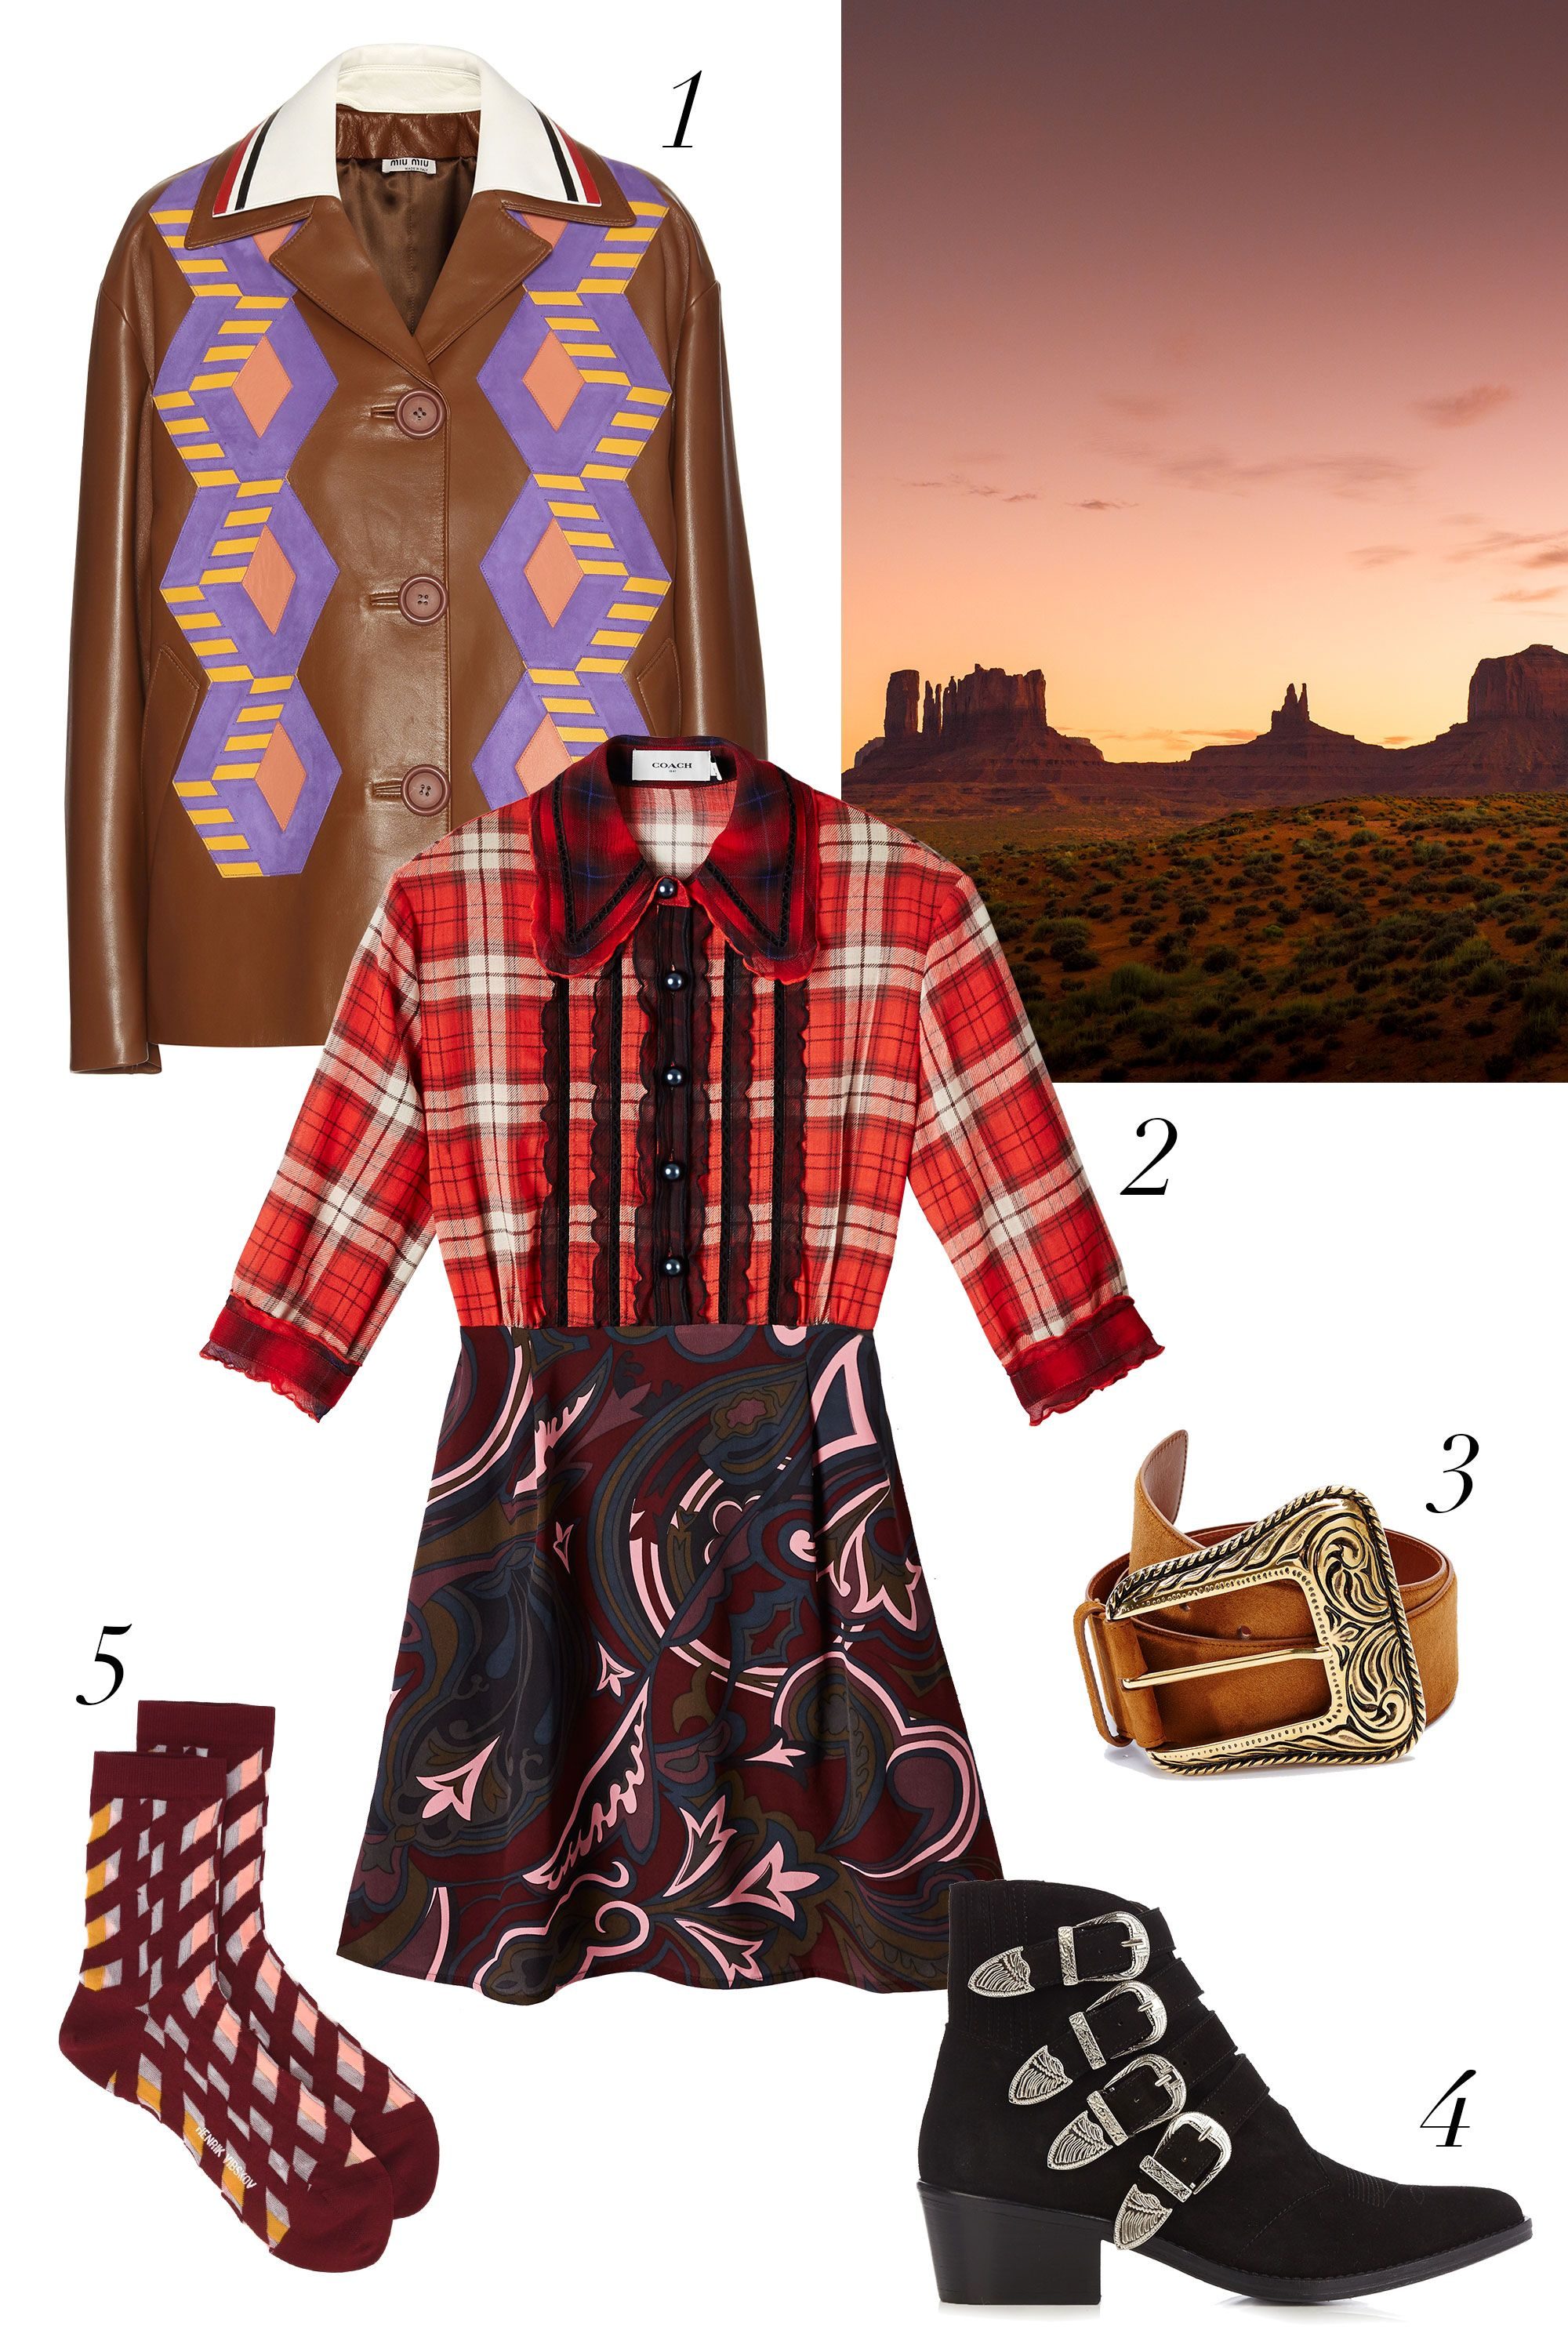 "<p>Because cowgirl-inspired westernwear isn't just a current fashion trend; it's a way of life...</p> <p><strong data-redactor-tag=""strong"" data-verified=""redactor"">What to Pack:</strong> 1. <em data-redactor-tag=""em"">Miu Miu Leather and Suede Jacket, $5,325, <a href=""http://www.mytheresa.com/en-us/leather-and-suede-jacket-548515.html"" target=""_blank"" data-tracking-id=""recirc-text-link"">mytheresa.com</a>;</em> 2. <em data-redactor-tag=""em"" data-verified=""redactor"">Coach 1941 Plaid & Scarf Print Dress, $795, <a href=""http://shop.nordstrom.com/s/coach-1941-plaid-scarf-print-dress/4474722?&cm_mmc=Mindshare_Nordstrom-_-NovemberAcc-_-Hearst-_-proactive"" target=""_blank"" data-tracking-id=""recirc-text-link"">nordstrom.com</a>; 3. Saint Laurent Suede Belt, $595, <a href=""http://shop.nordstrom.com/s/saint-laurent-suede-belt/4381621?&cm_mmc=Mindshare_Nordstrom-_-NovemberAcc-_-Hearst-_-proactive"" target=""_blank"" data-tracking-id=""recirc-text-link"">nordstrom.com</a>; 4. Toga Buckle Suede Ankle Boots, $415, <a href=""http://www.matchesfashion.com/us/products/Toga-Buckle-suede-ankle-boots-193436"" target=""_blank"" data-tracking-id=""recirc-text-link"">matchesfashion.com</a>; 5. Henrik Vibskov 'Laktrits Femme' socks, for similar styles visit </em><a href=""https://www.farfetch.com/shopping/women/designer-henrik-vibskov/items.aspx?designer=2207&category=136290&from=search_listing&q=henrik%20vibskov%20socks"" target=""_blank"" data-tracking-id=""recirc-text-link""><em data-redactor-tag=""em"" data-verified=""redactor"">farfetch.com</em></a></p>"